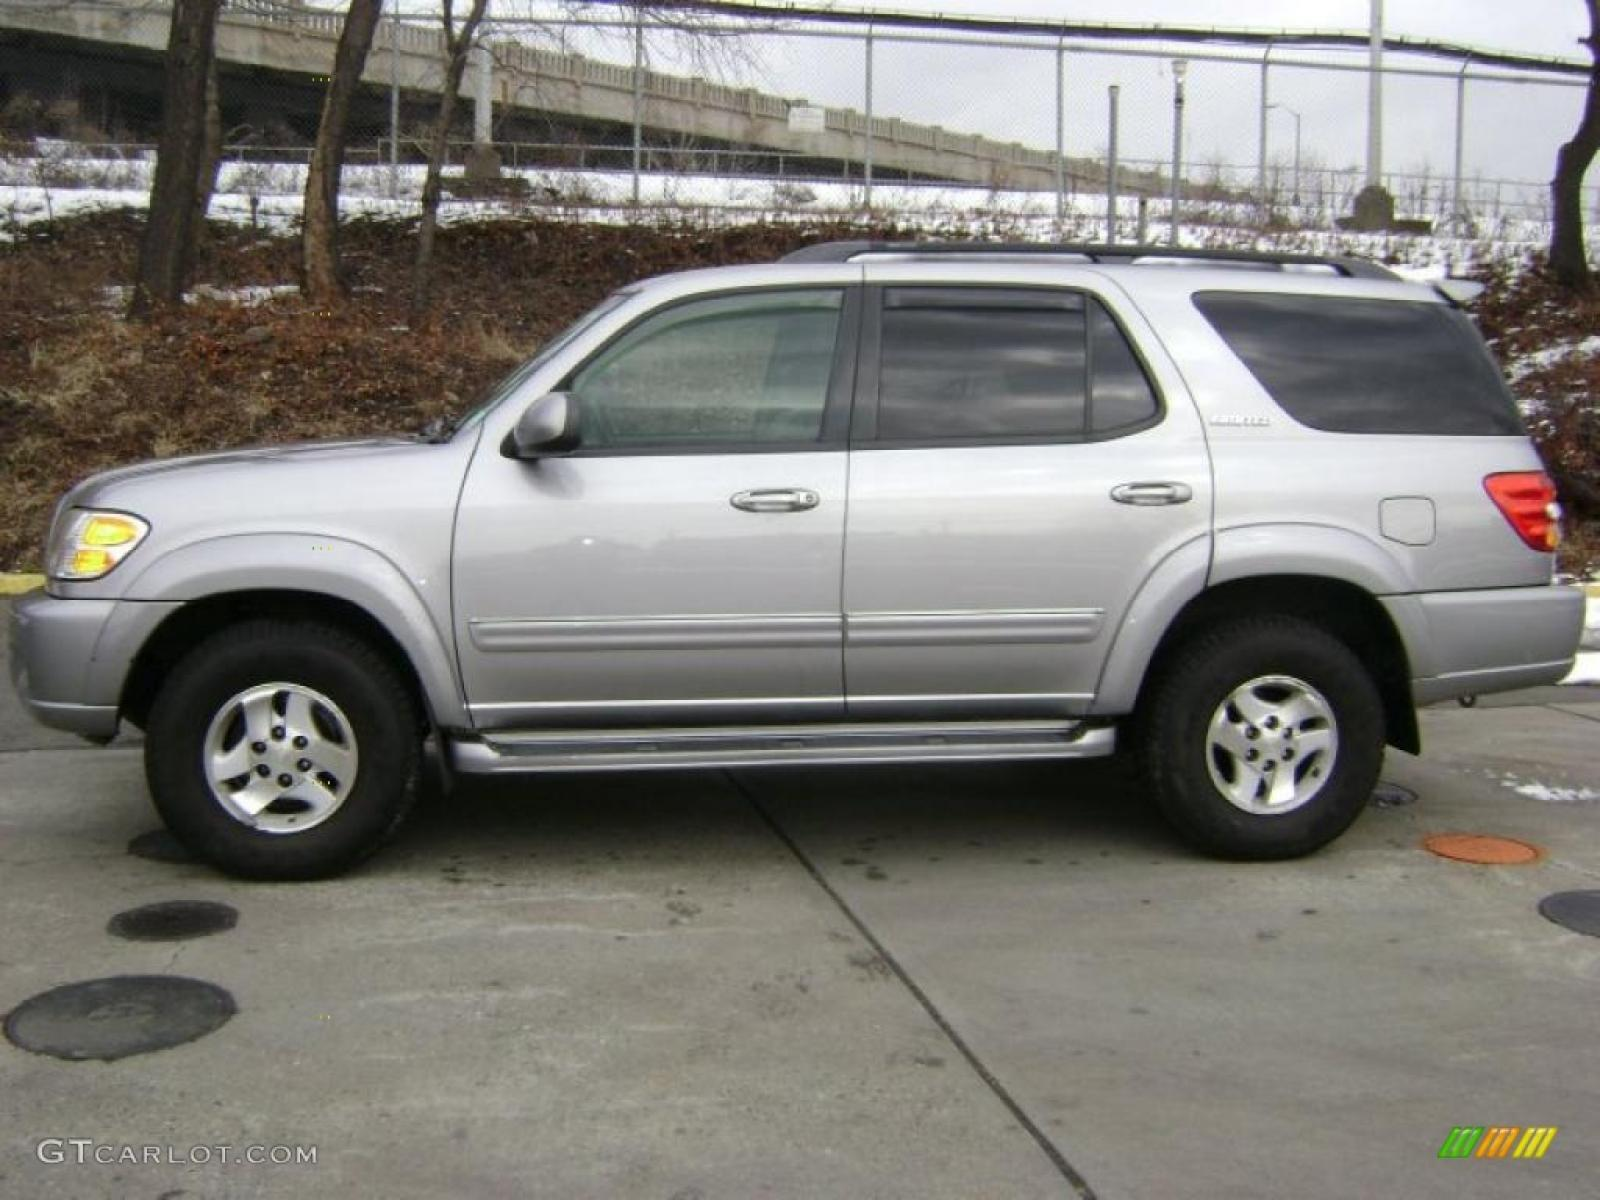 hight resolution of 800 1024 1280 1600 origin 2002 toyota sequoia